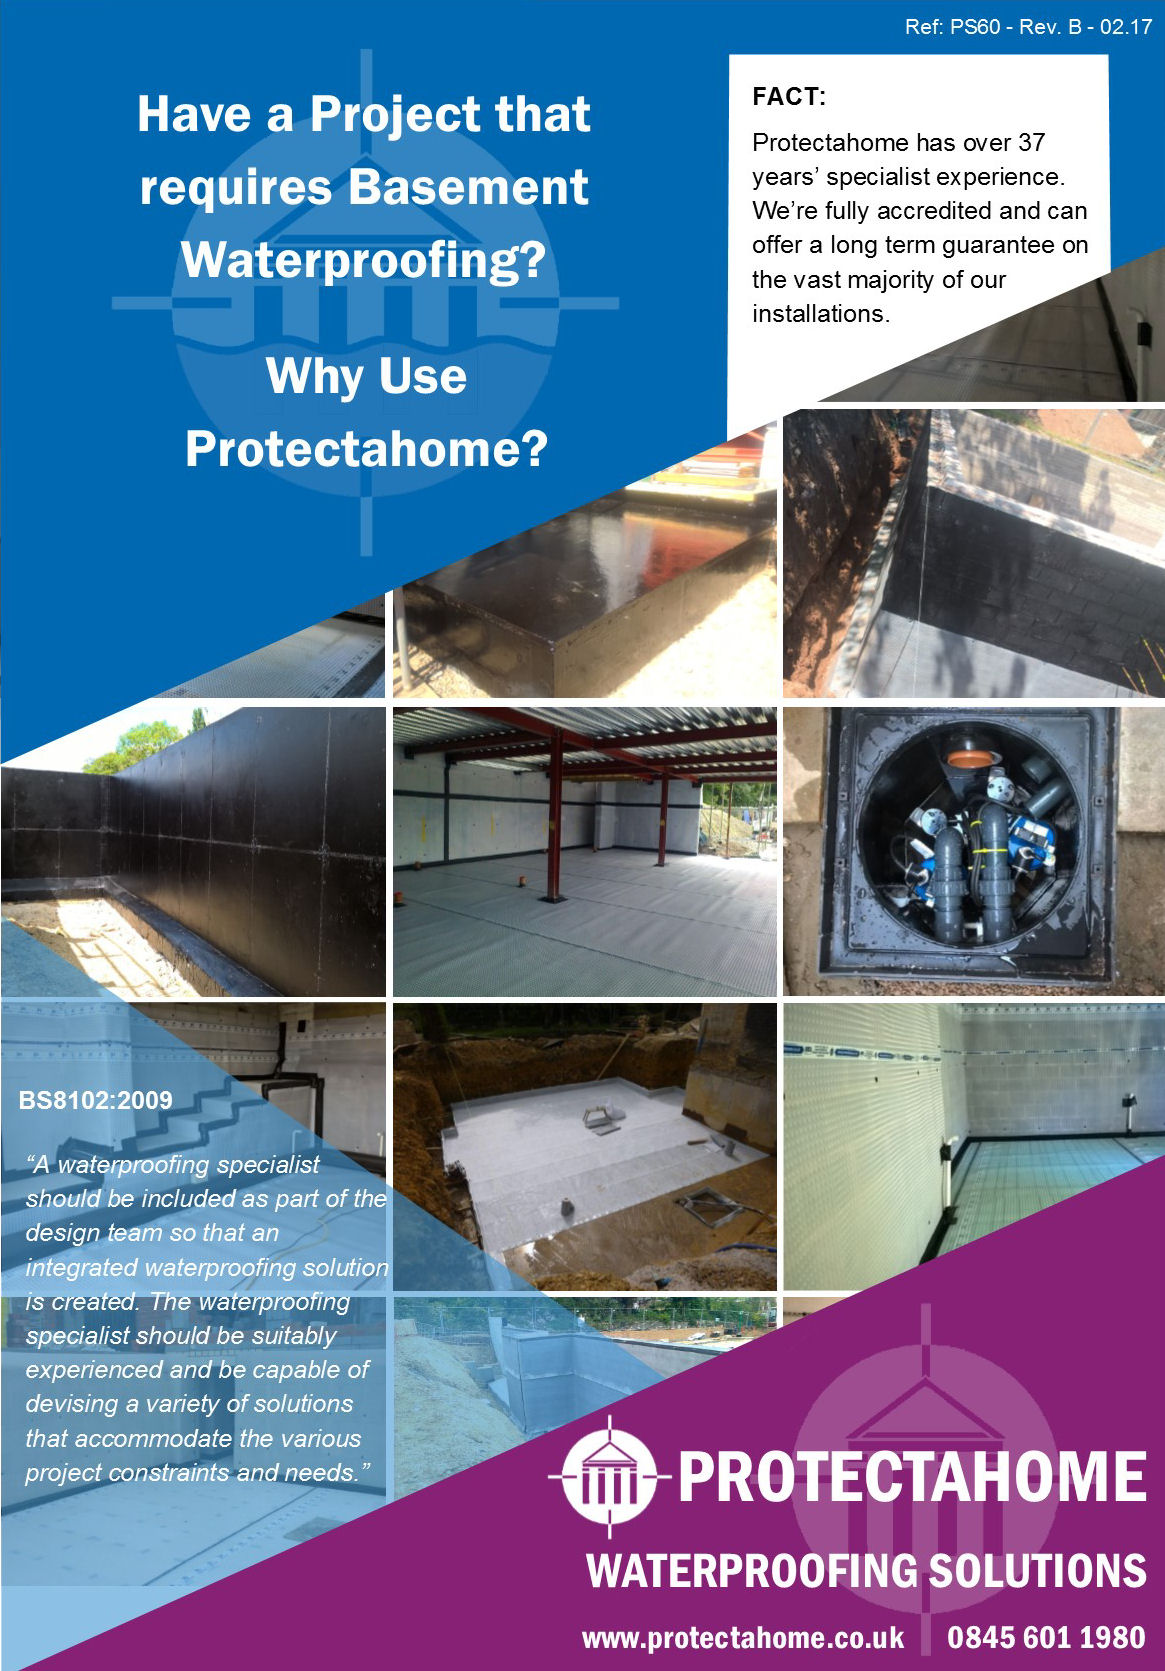 Basement Waterproofing, Why Use Protectahome